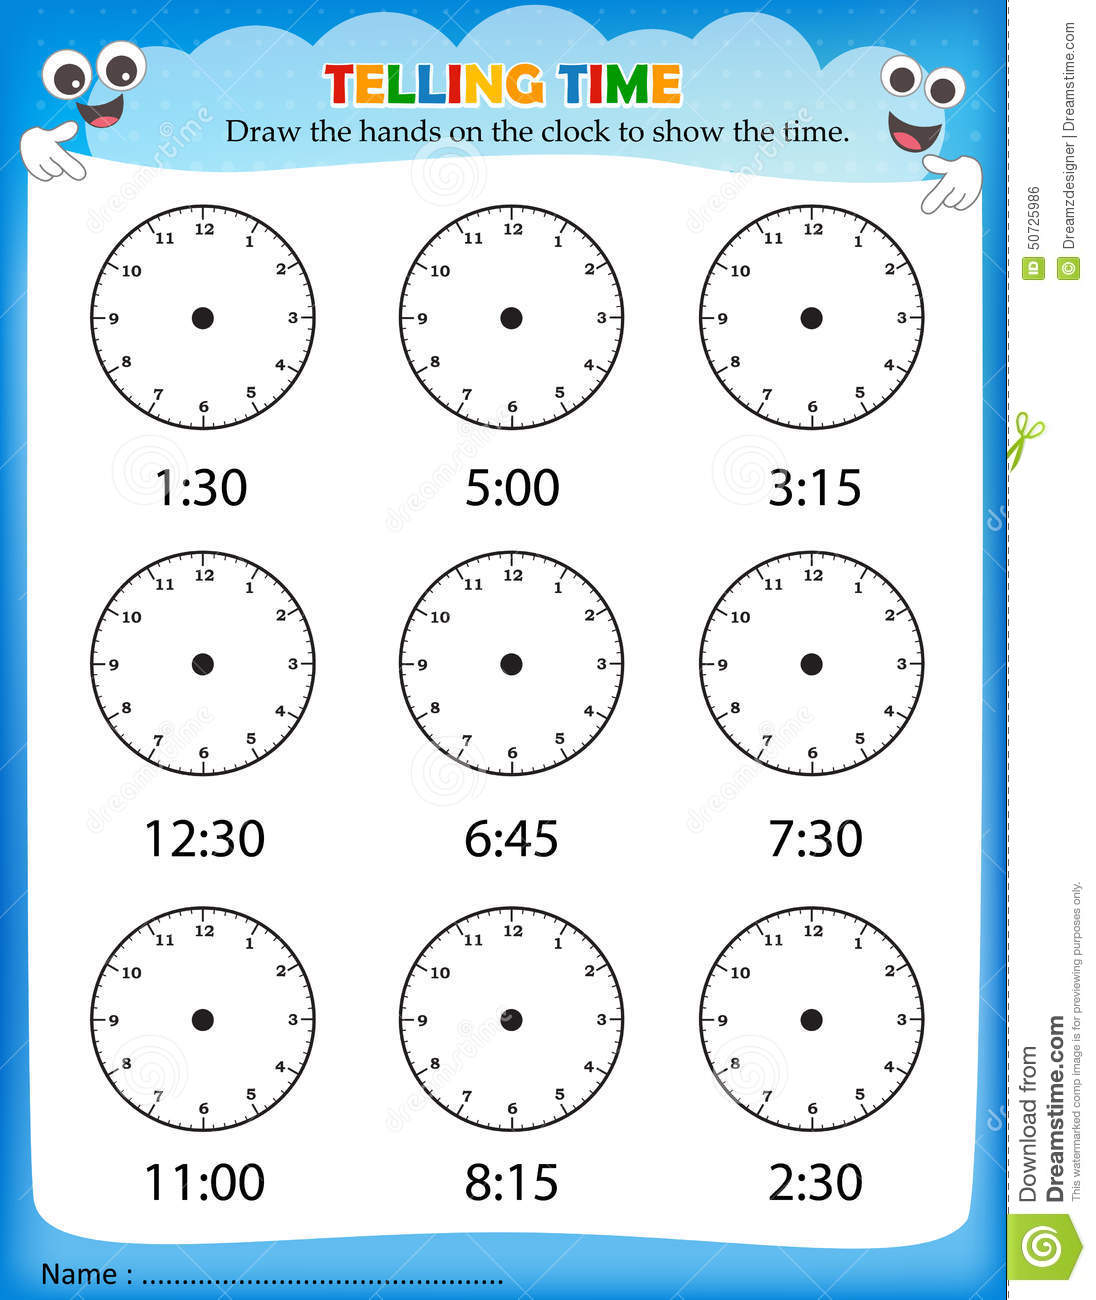 Worksheets Telling Time Worksheets Kindergarten telling time worksheet stock vector illustration of preschool worksheet